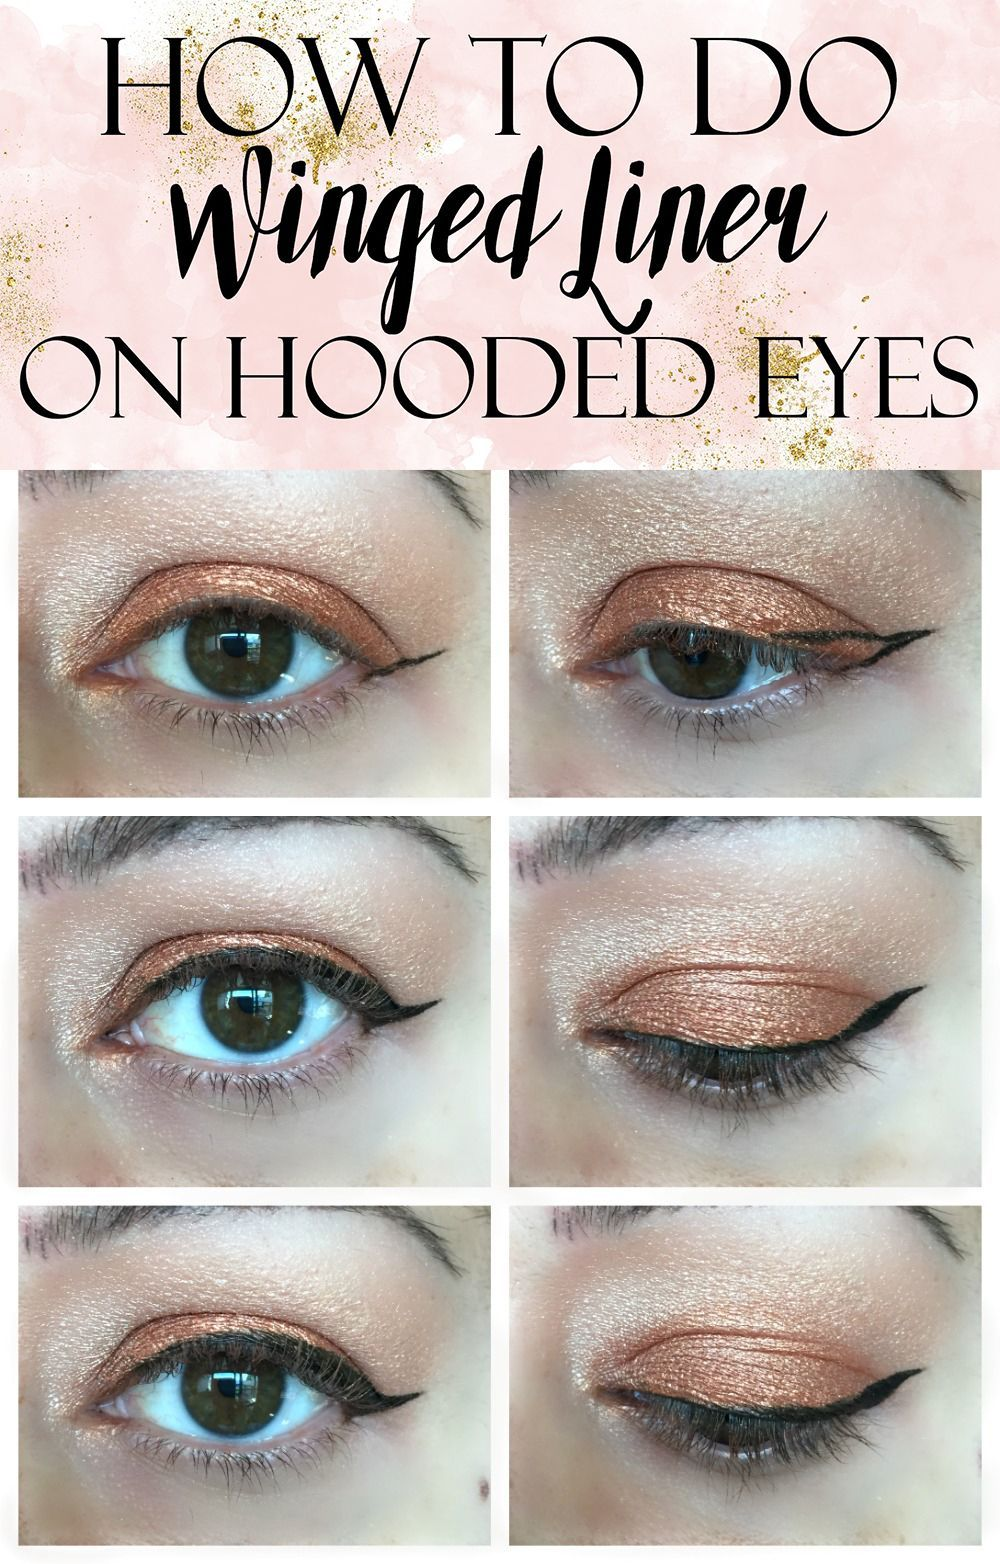 A quick easy tutorial on how to apply winged liner on hooded eyes easy winged eye liner tutorial for hooded eye lids baditri Choice Image